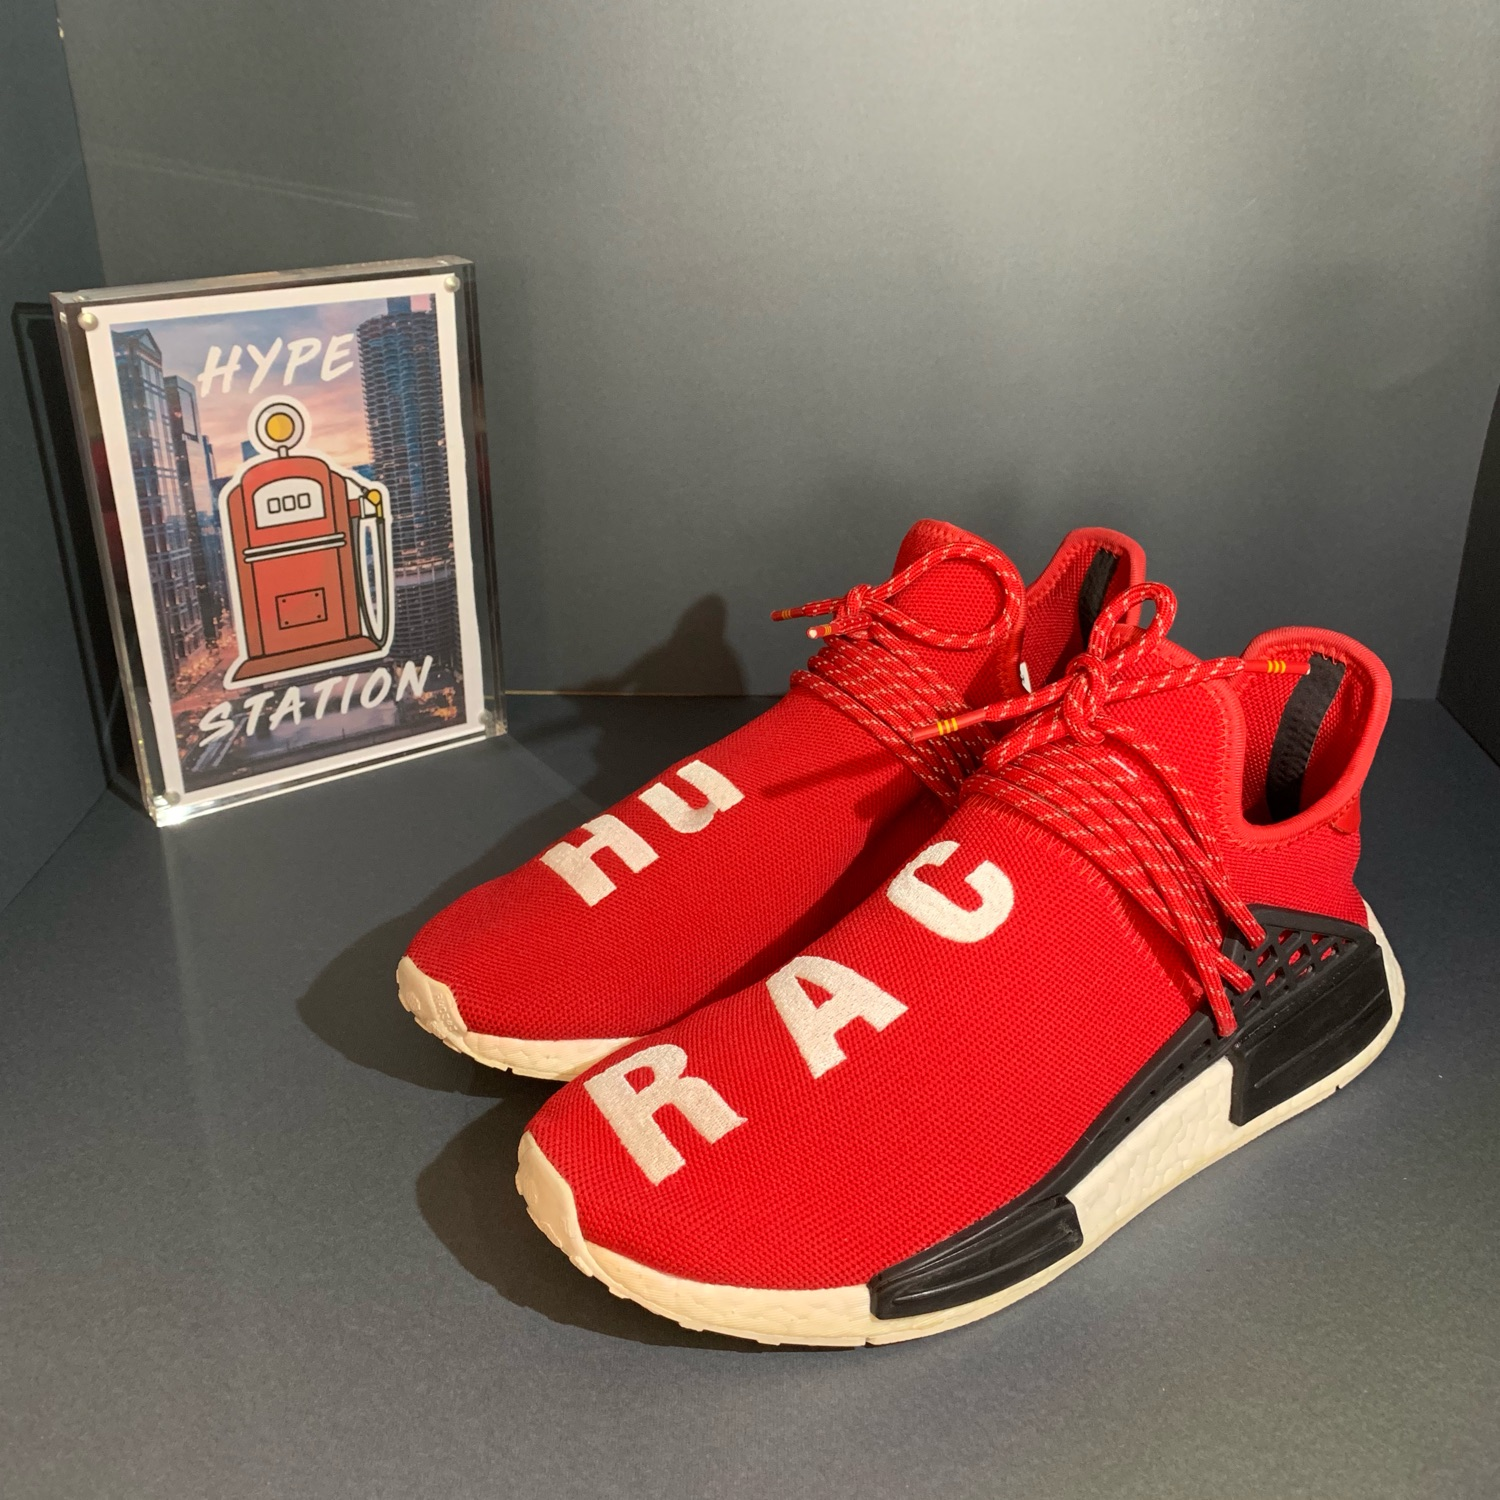 low priced db6cb 2748b Adidas Nmd Hu Pharrell Human Race Scarlet (Used)